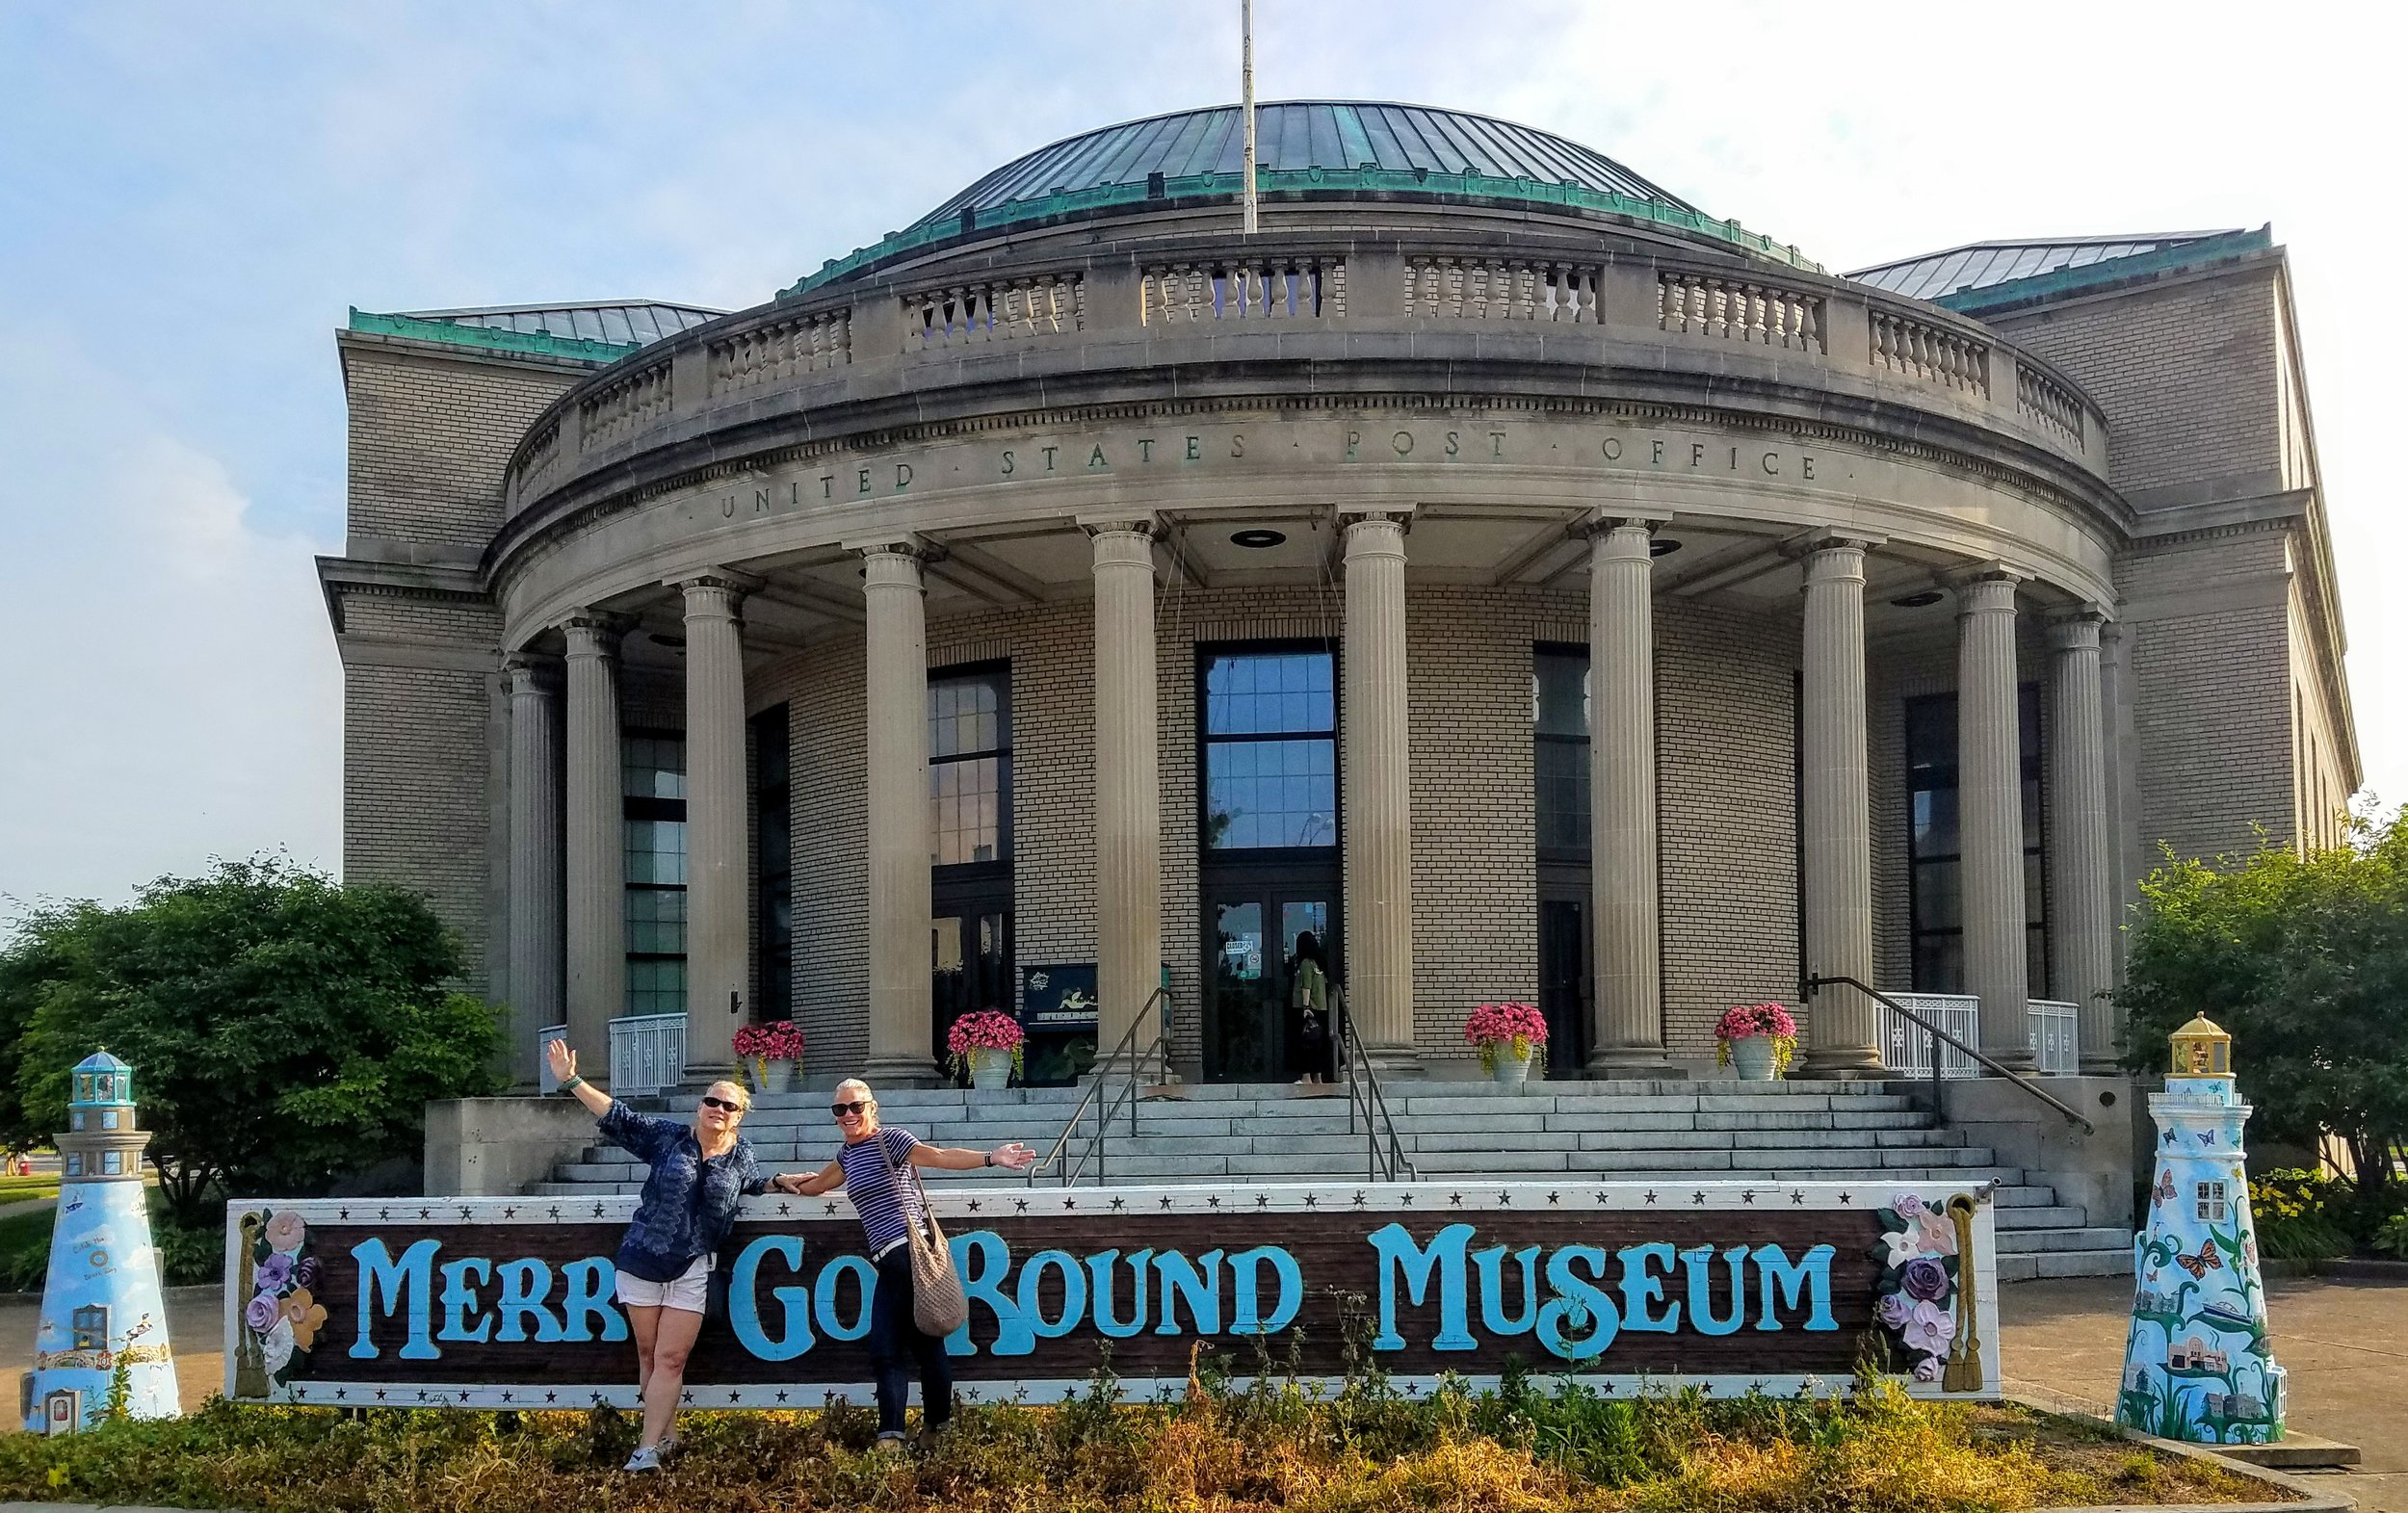 The museum was closed….photo courtesy of Bill Gilmore